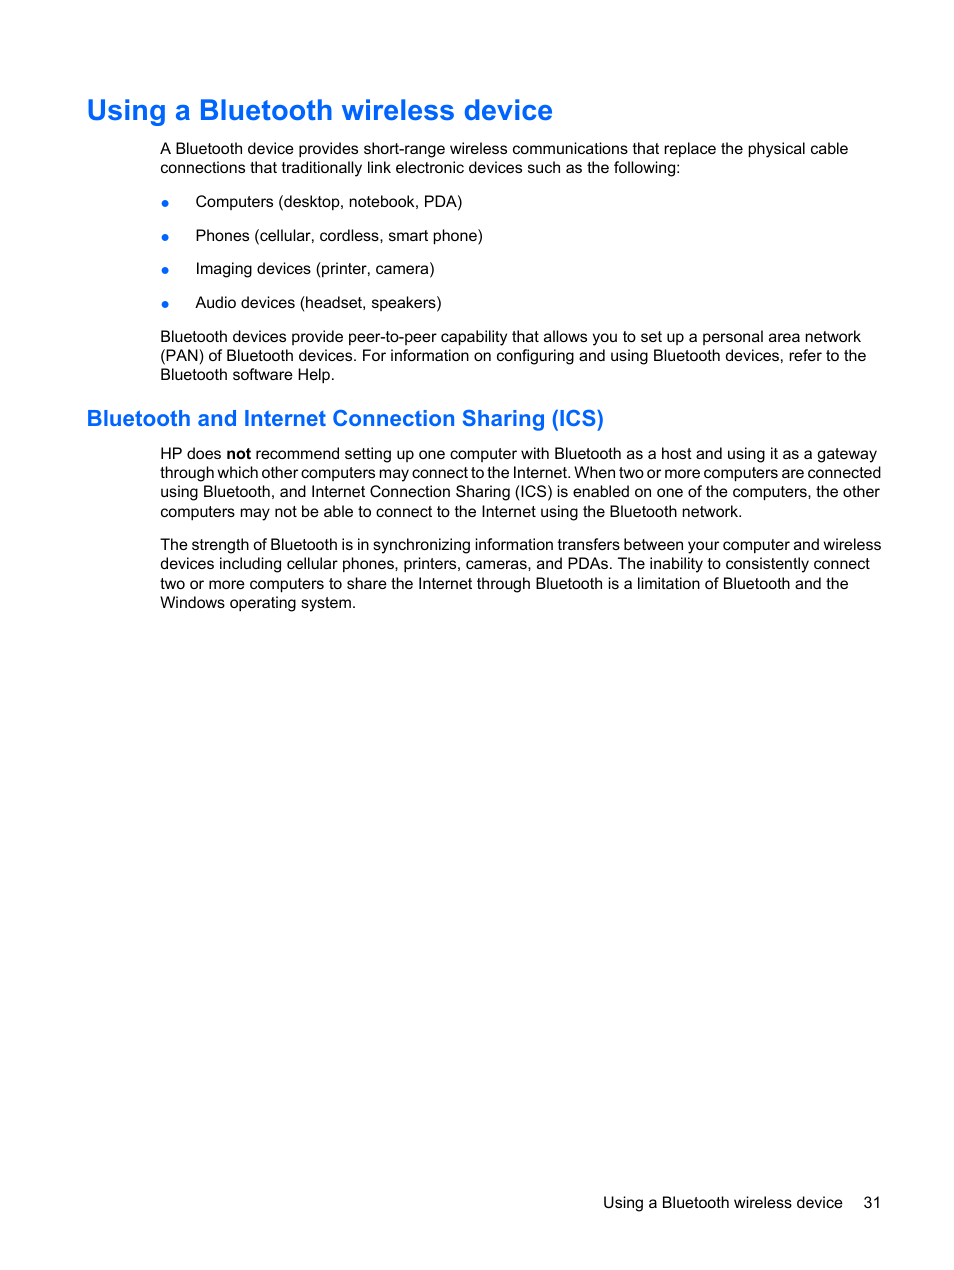 Using a bluetooth wireless device, Bluetooth and internet connection  sharing (ics) | HP ProBook 6450b Notebook-PC User Manual | Page 41 / 181